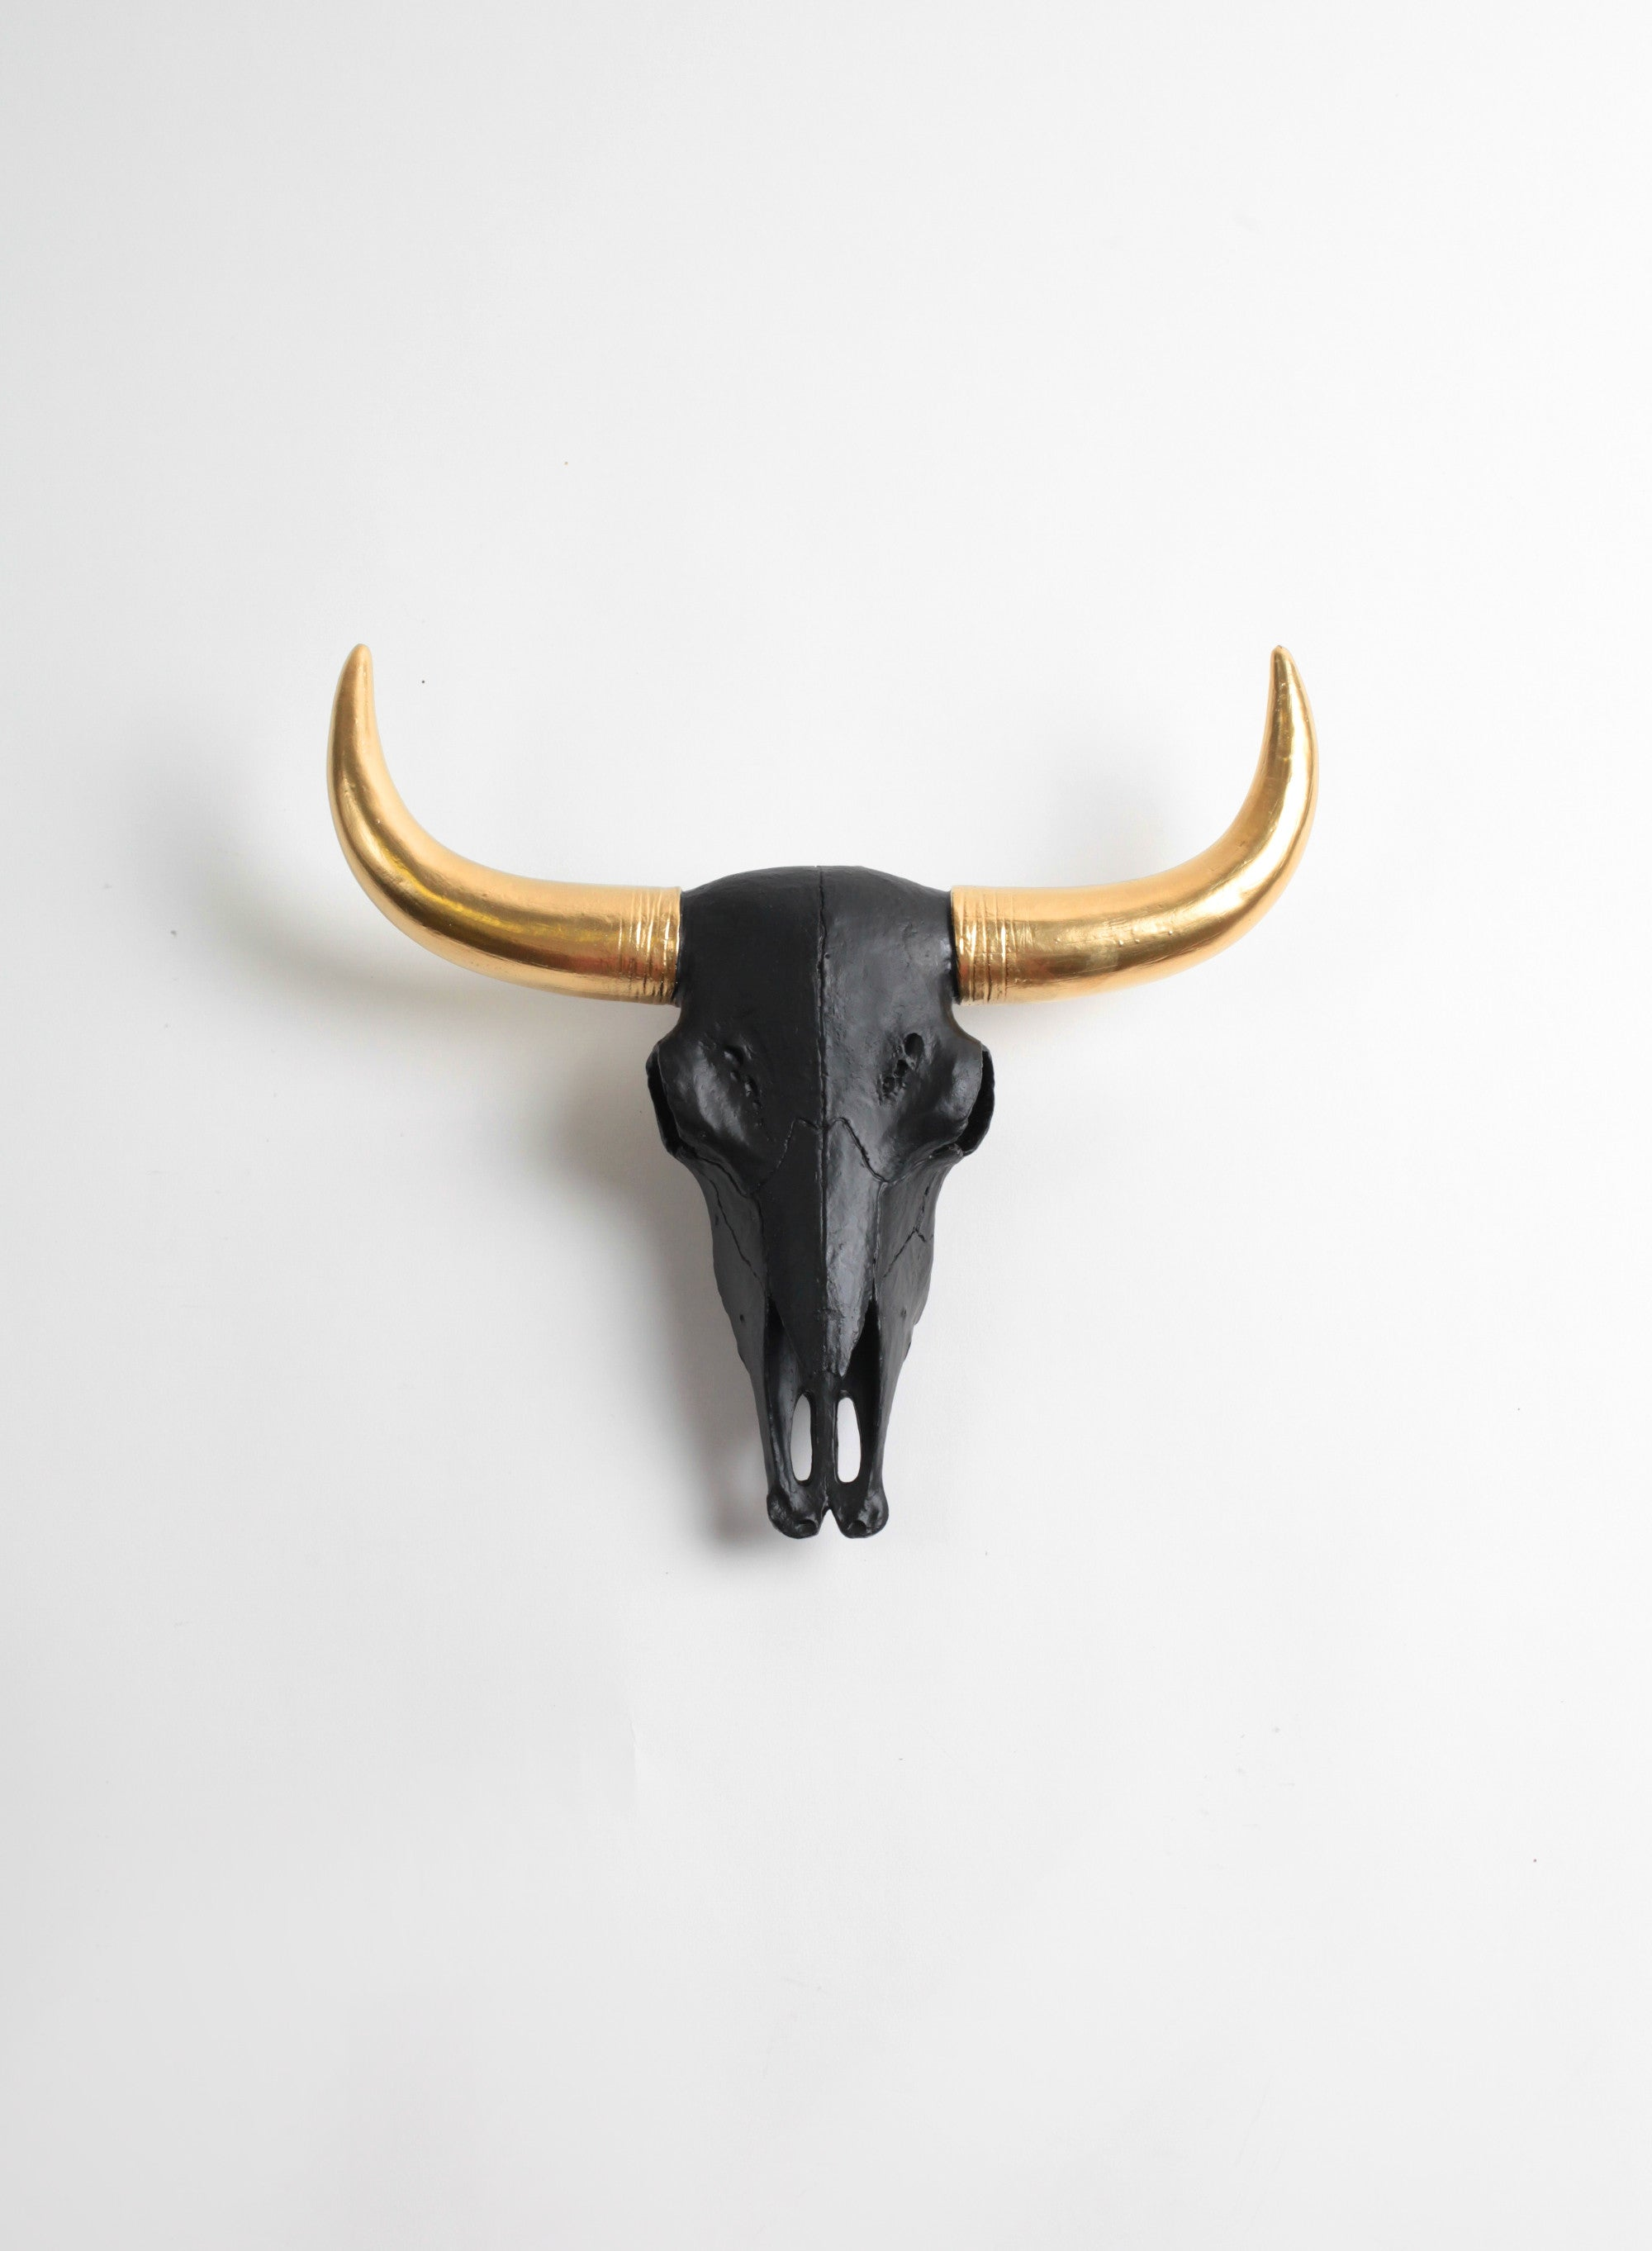 The Bison Skull | Black W/ Gold Horn Skull | Faux Taxidermy